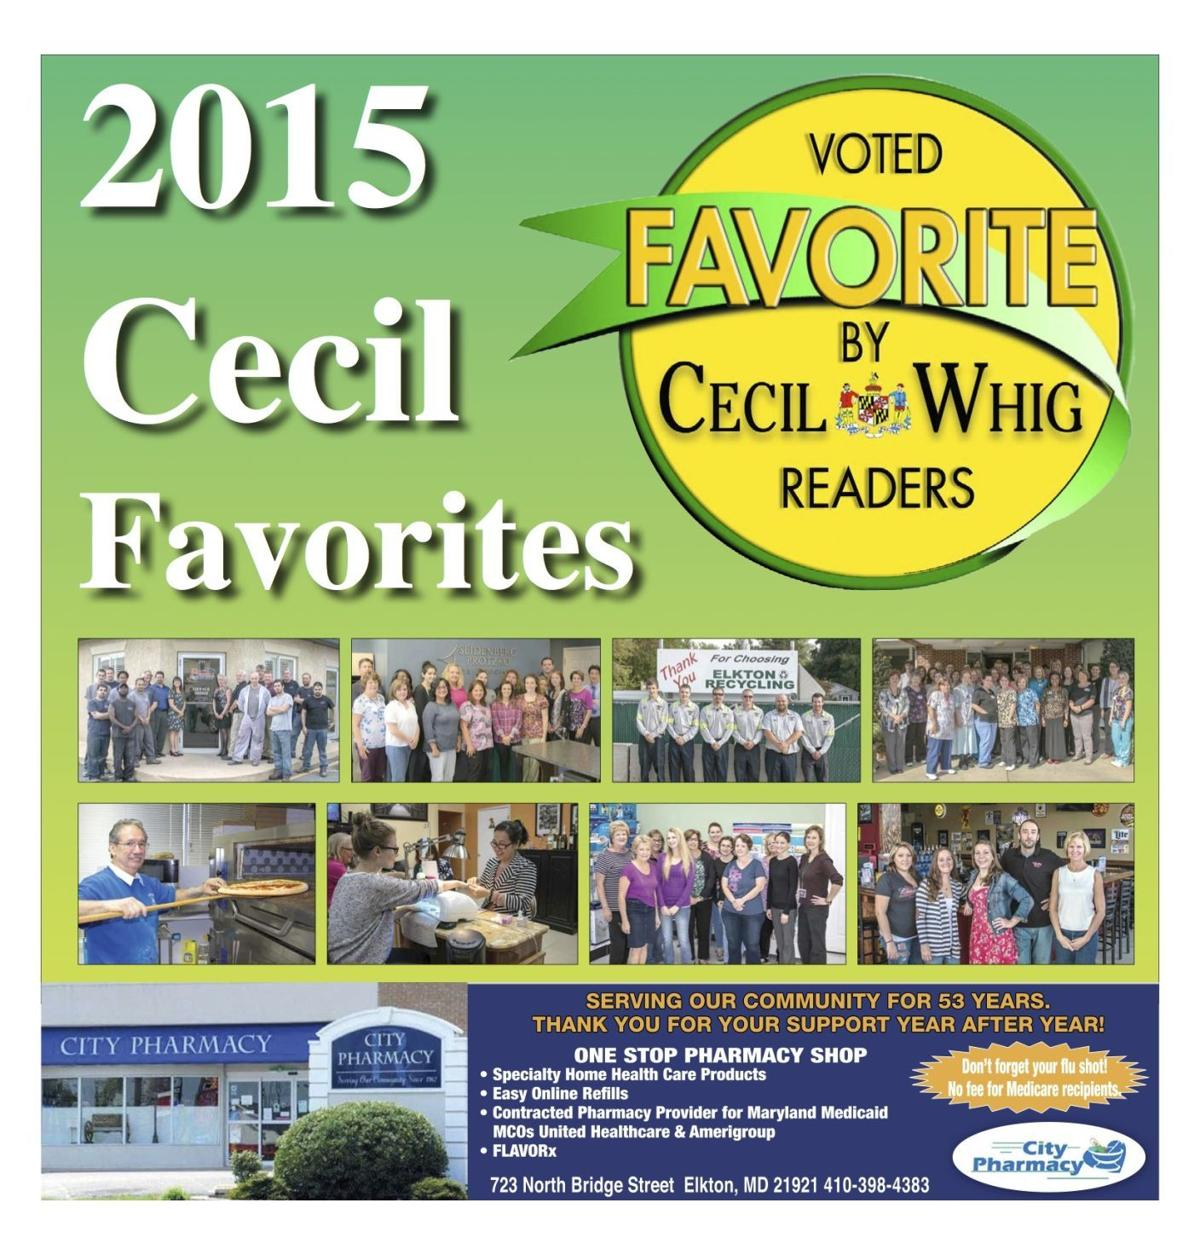 Cecil Favorites cover 2015